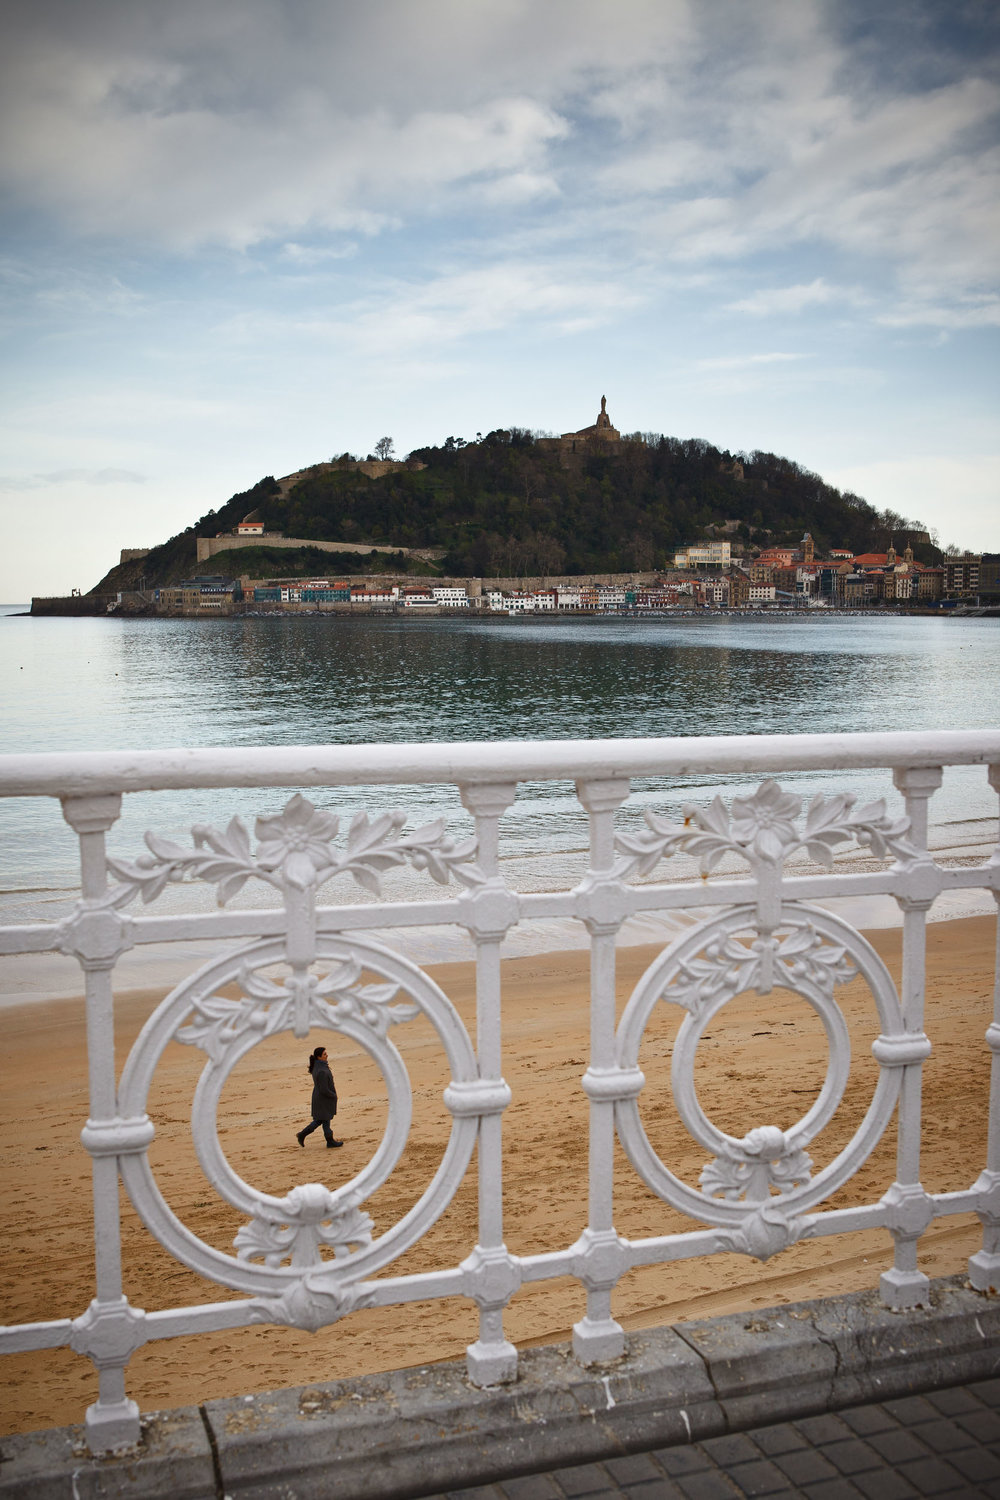 Dogwalker on La Concha beach with Monte Urgull in background,  San Sebastián, Spain.